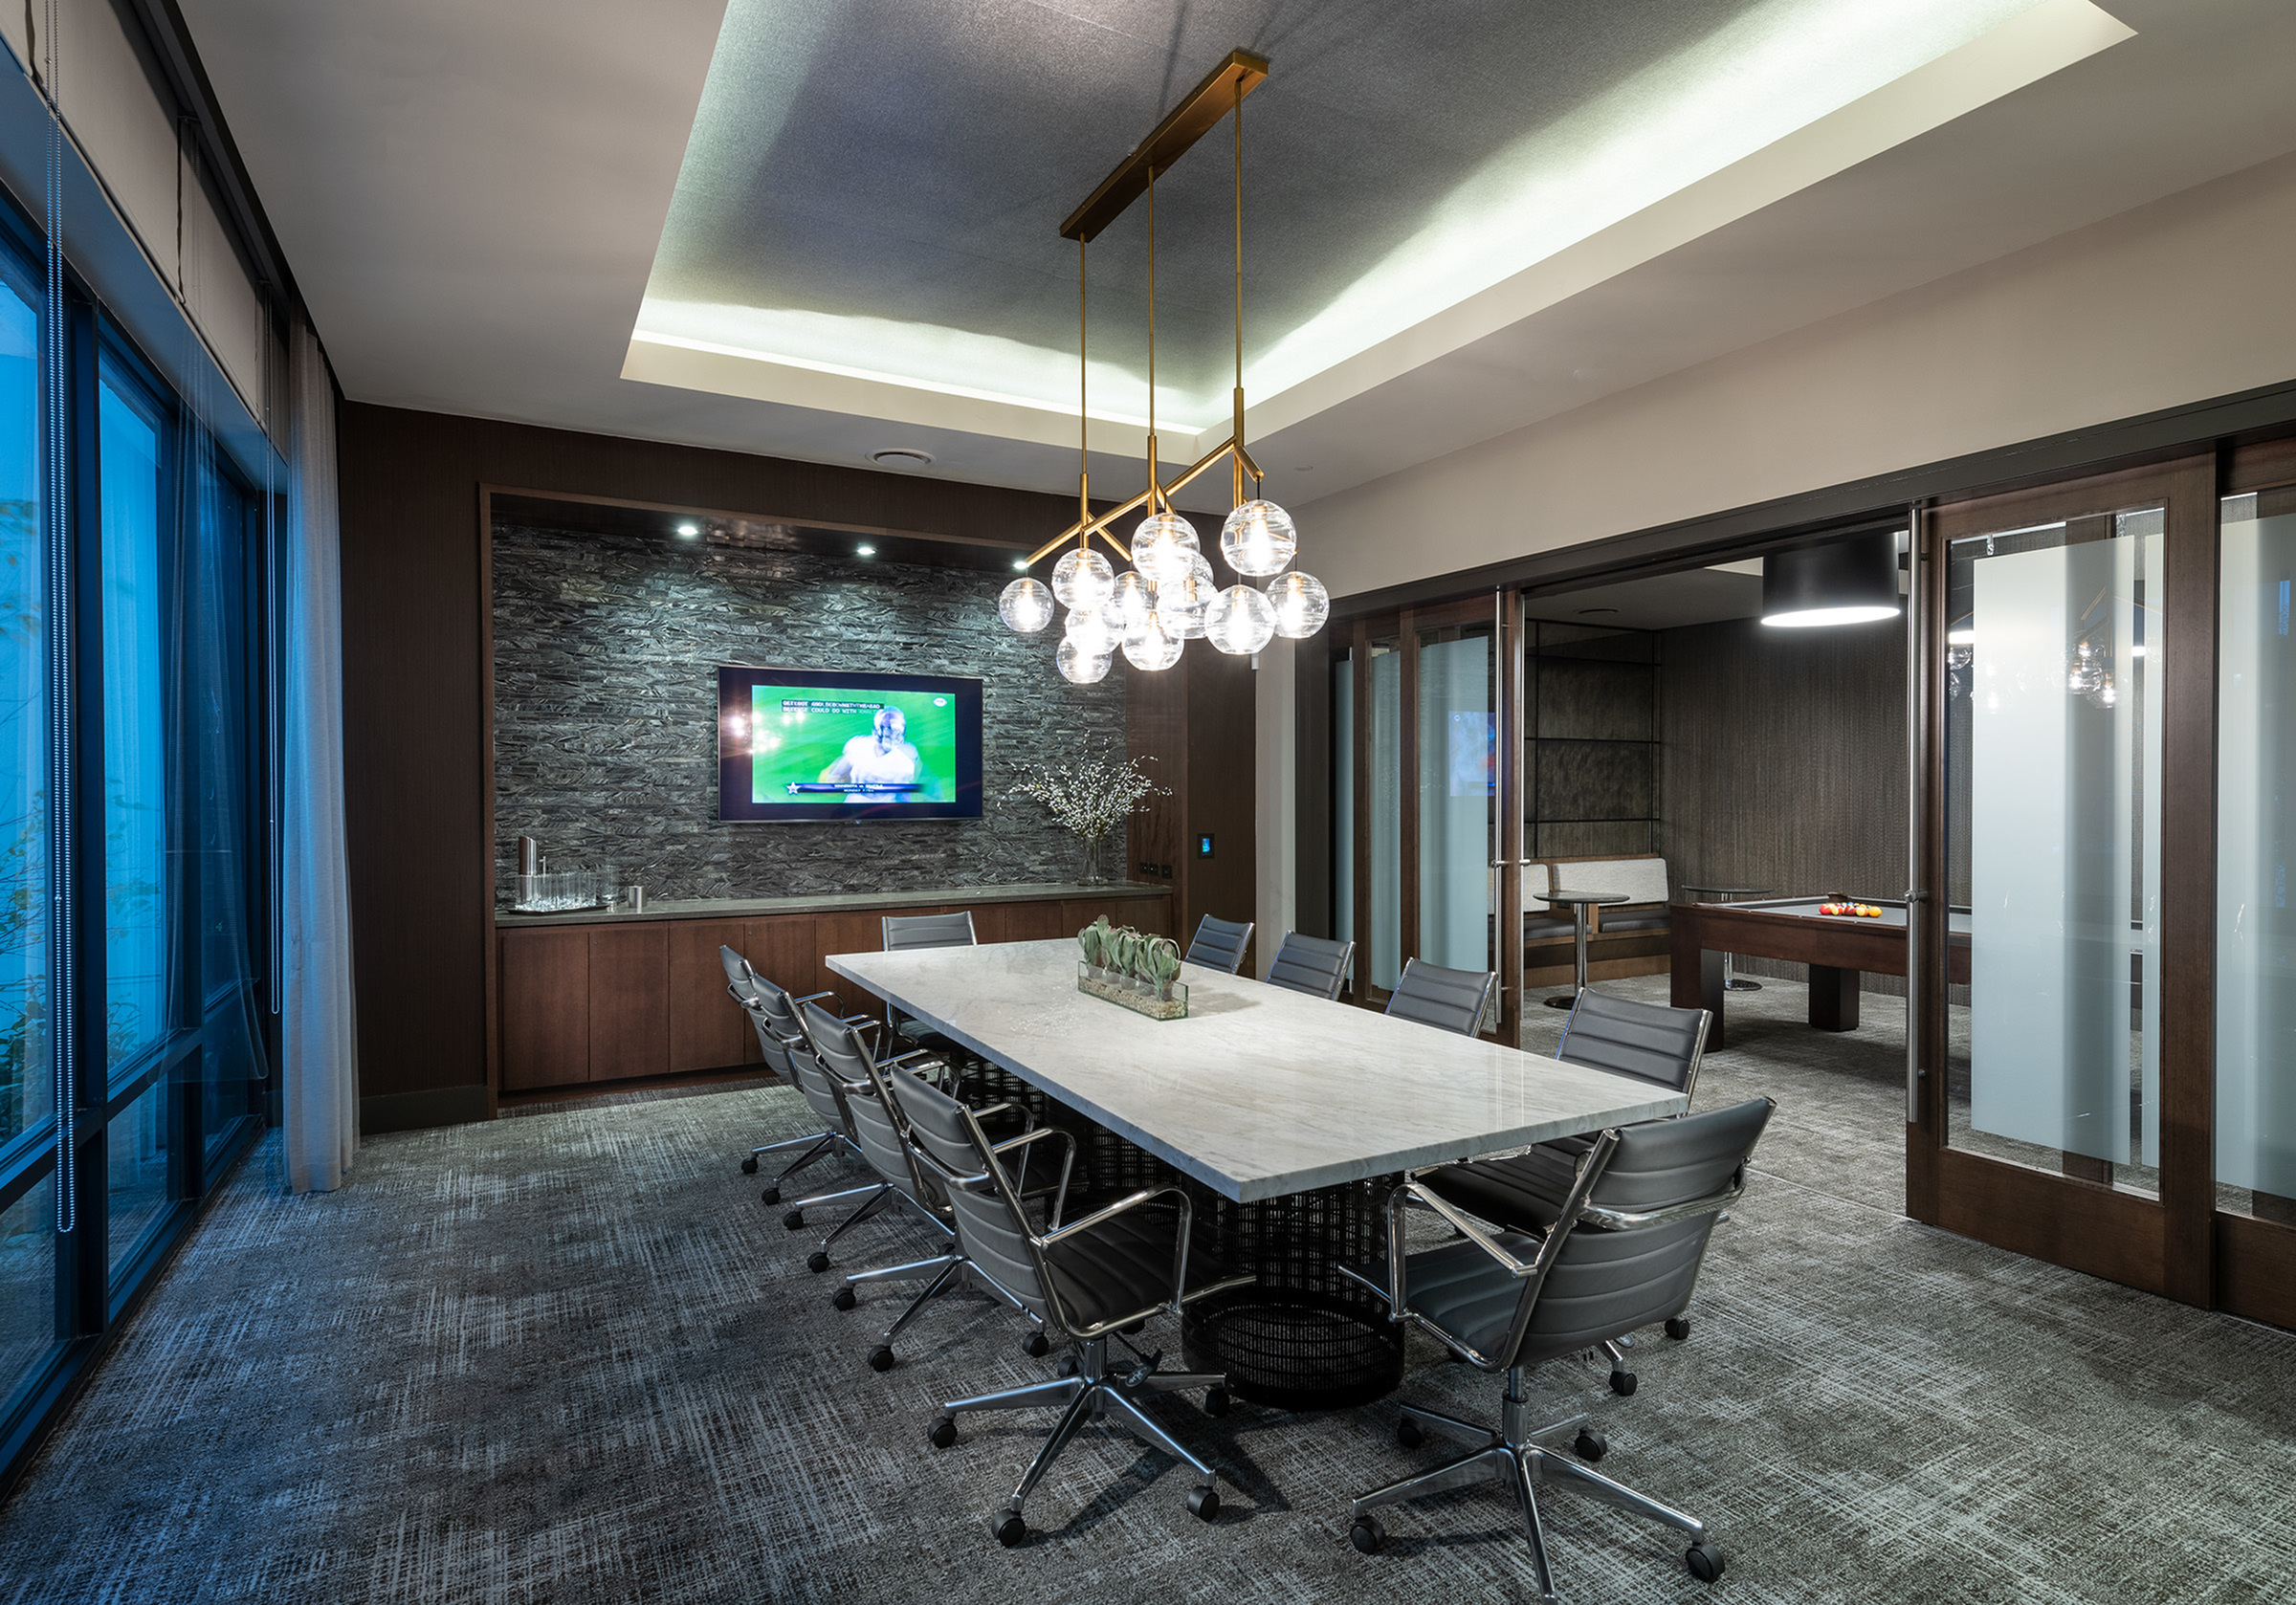 Hanover Dr. Phillips, 	Two executive conference rooms